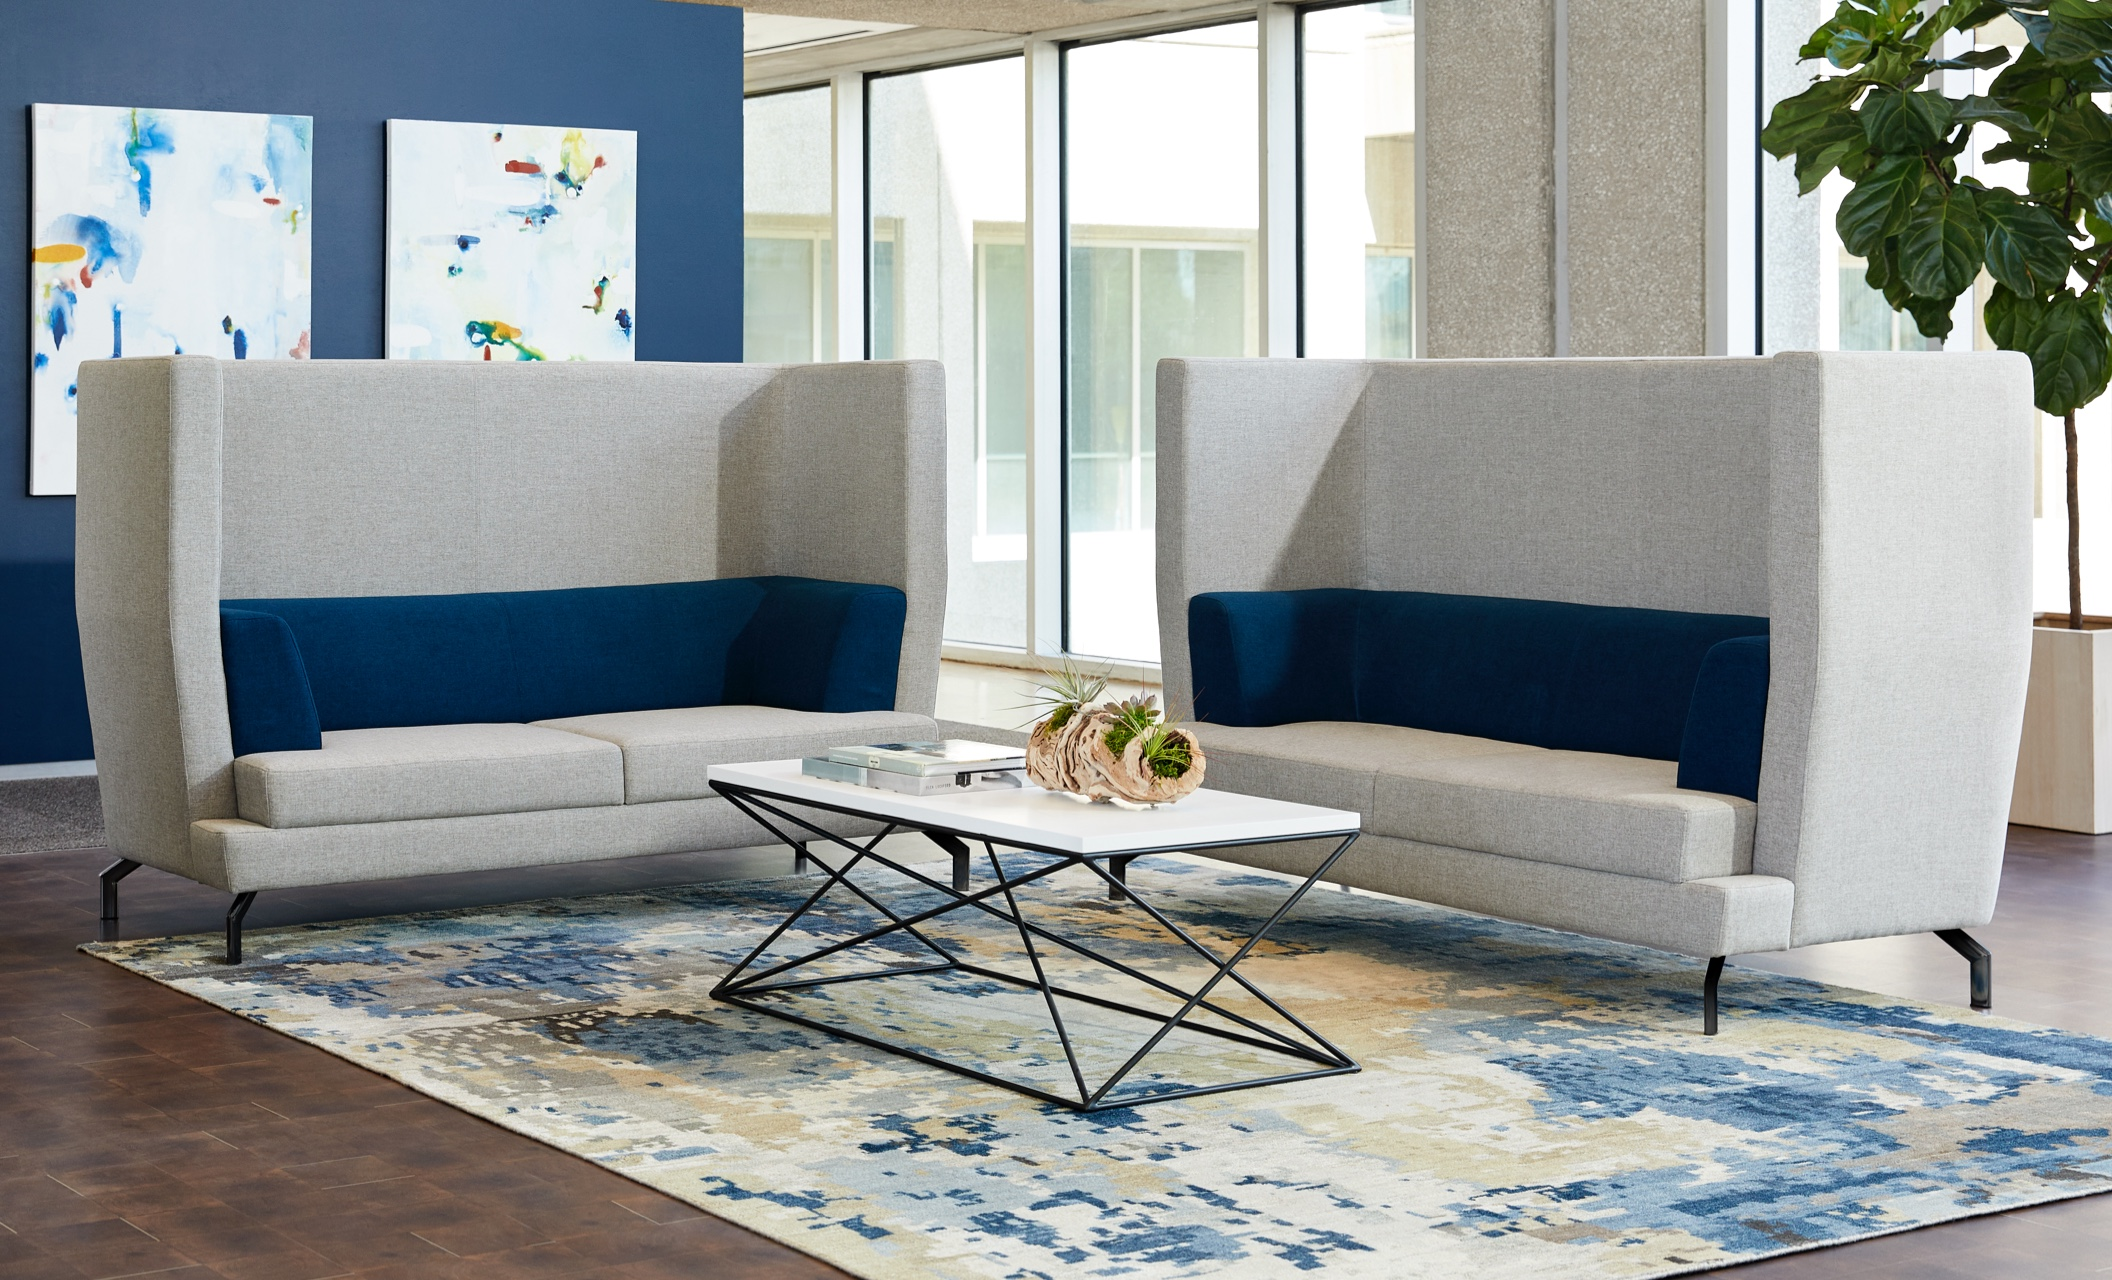 two high back sofas surround a coffee table in an office setting